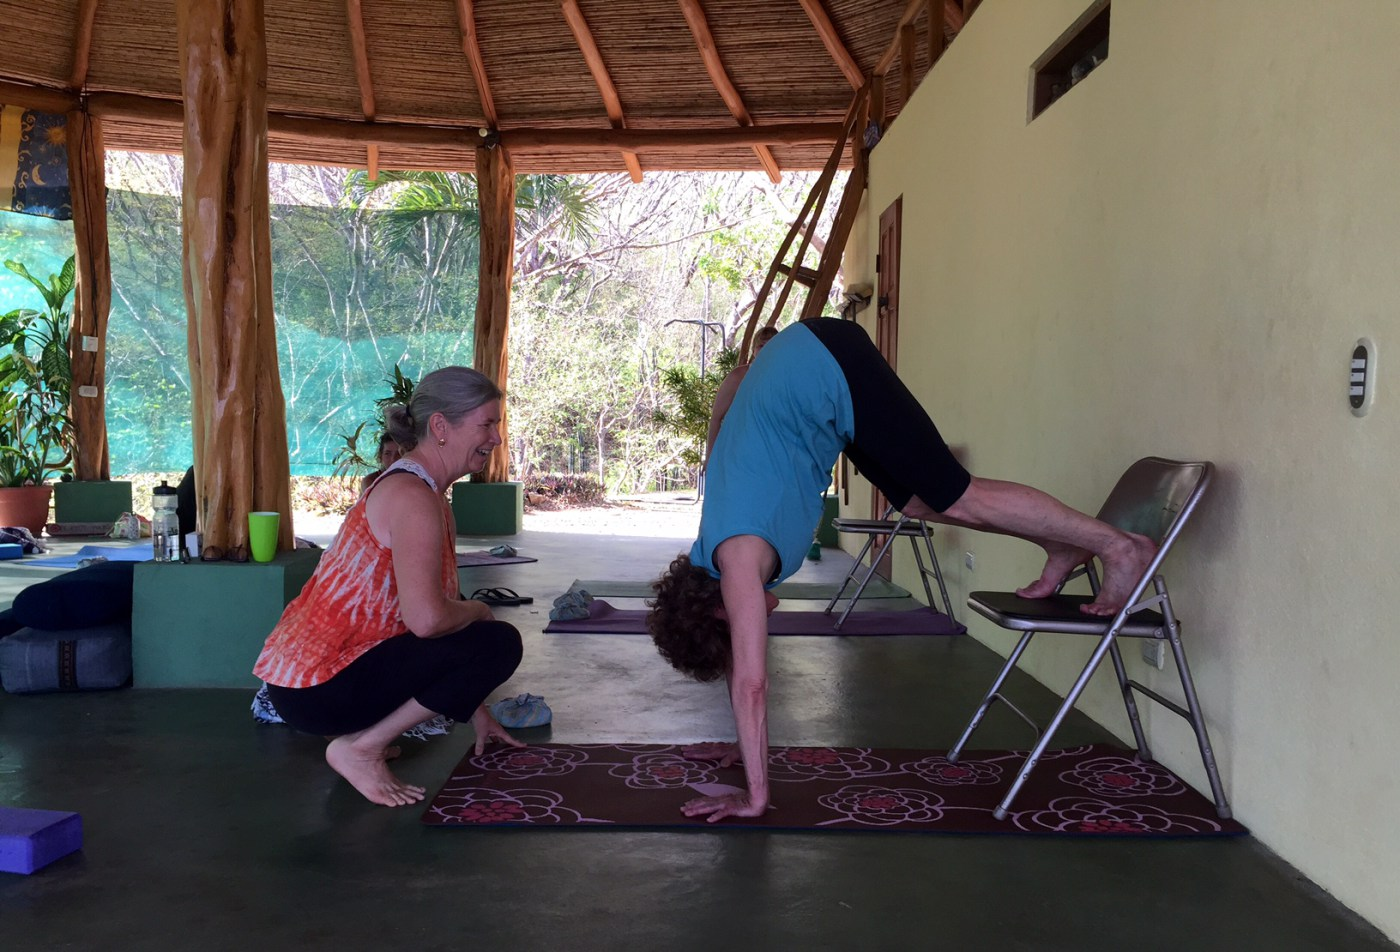 Mary Byerly yoga instructor. Defining real yoga.